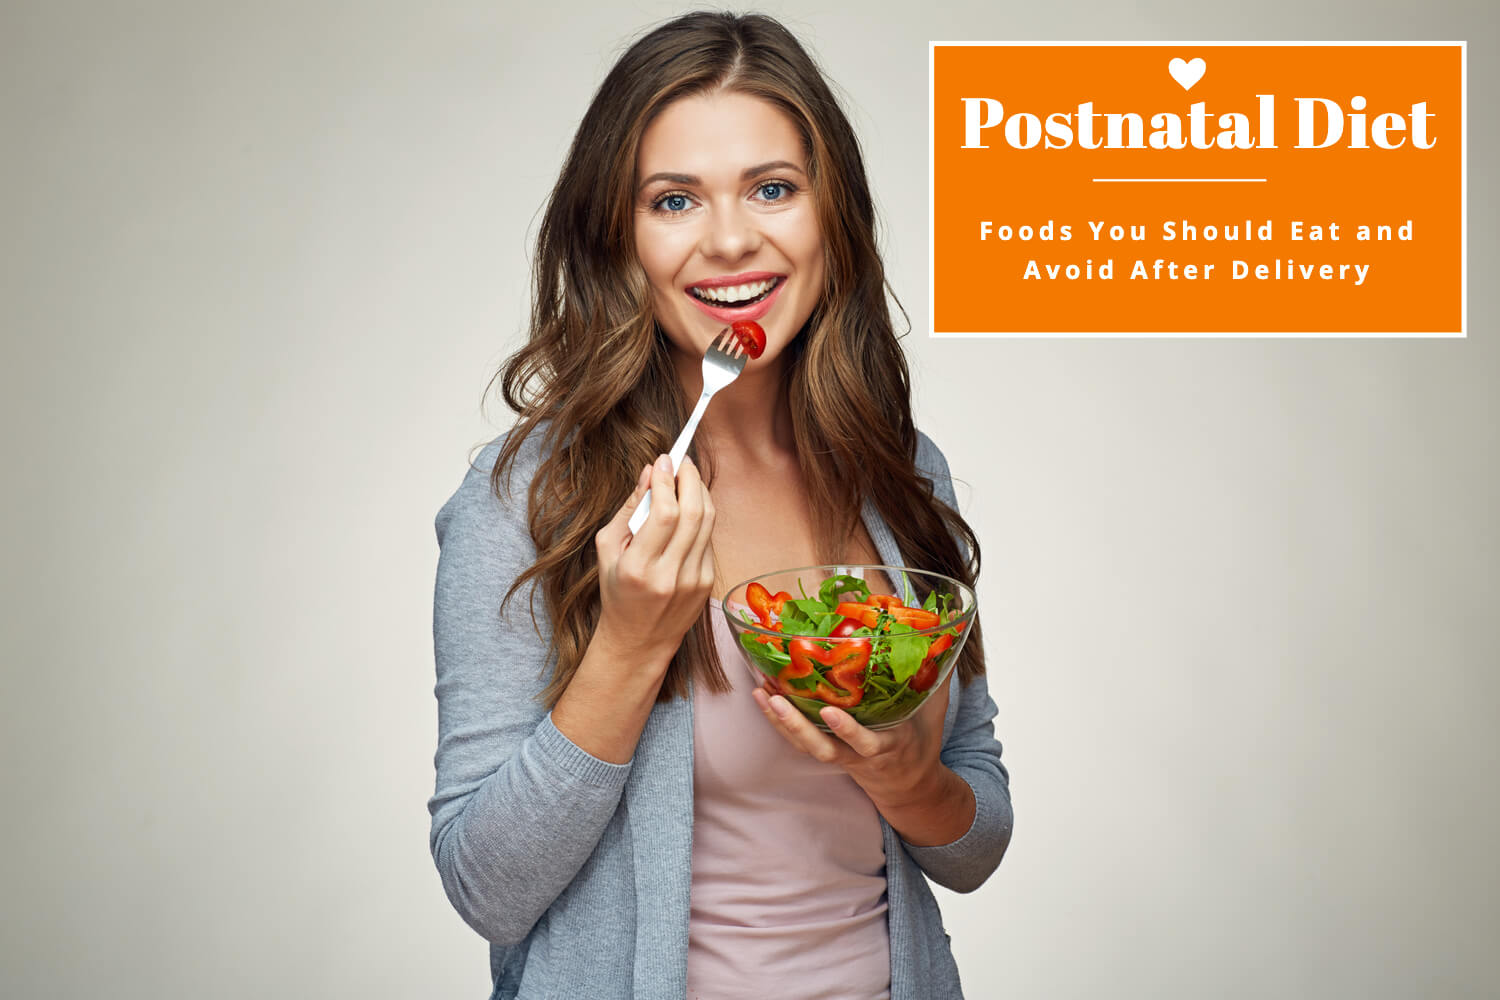 Postnatal Diet – Foods You Should Eat and Avoid After Delivery